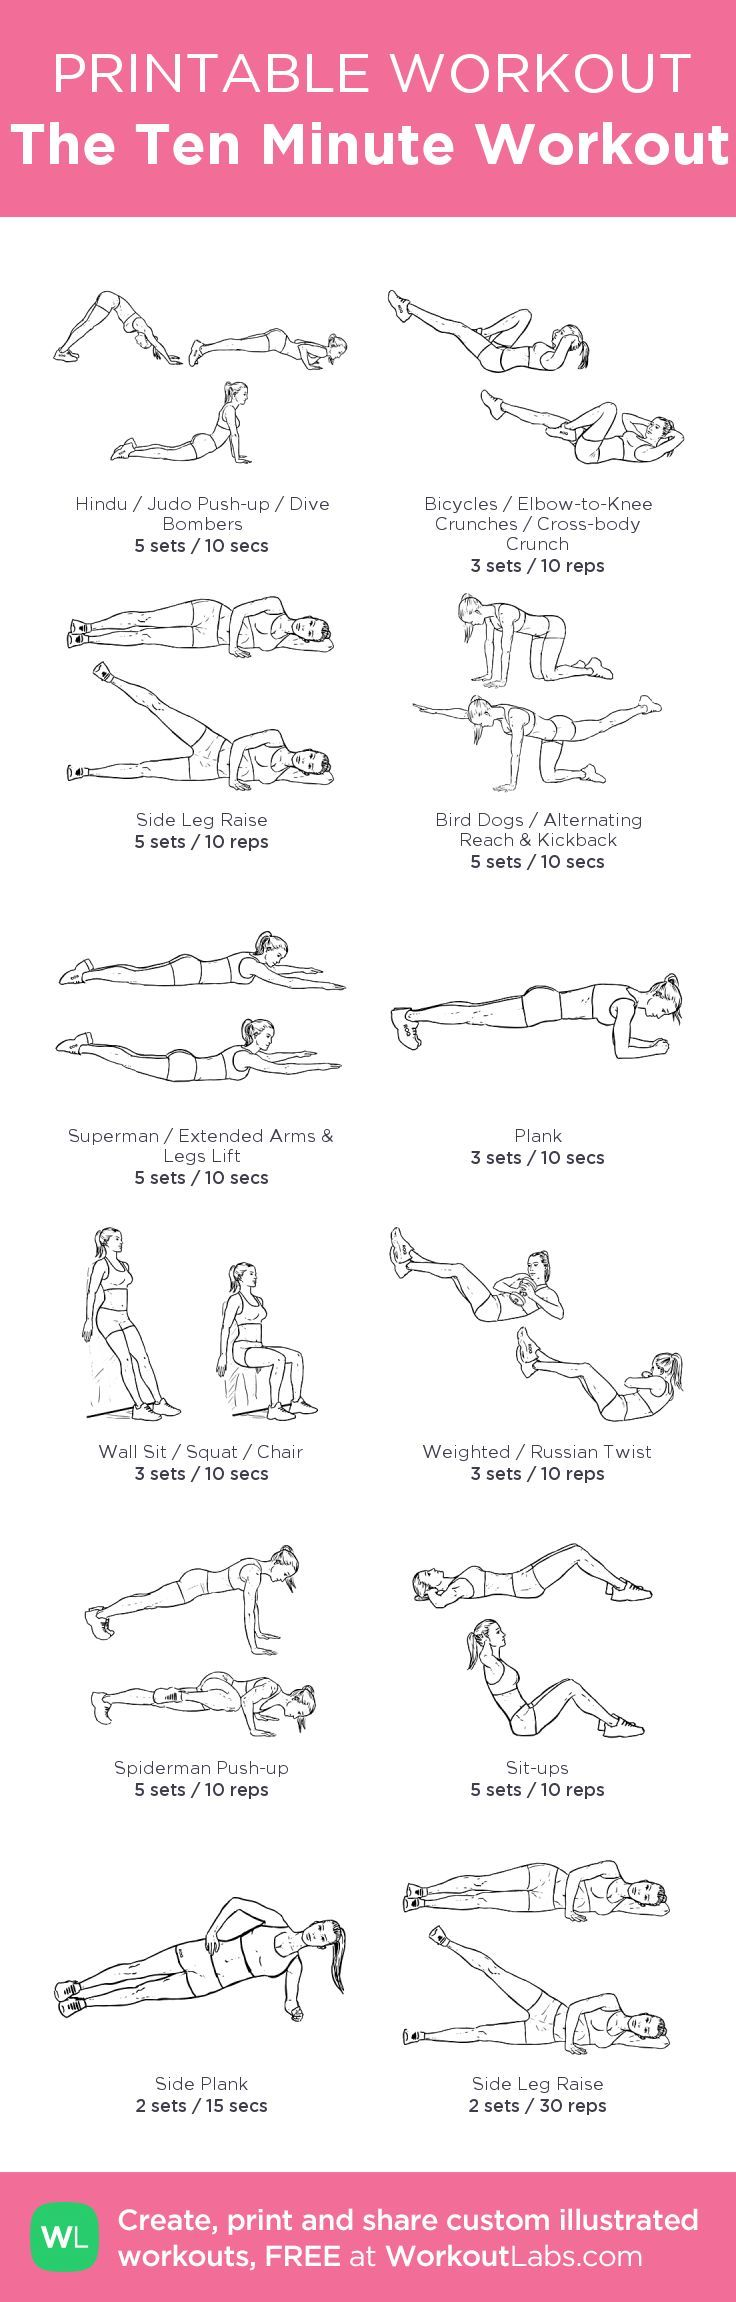 The Ten Minute Workout